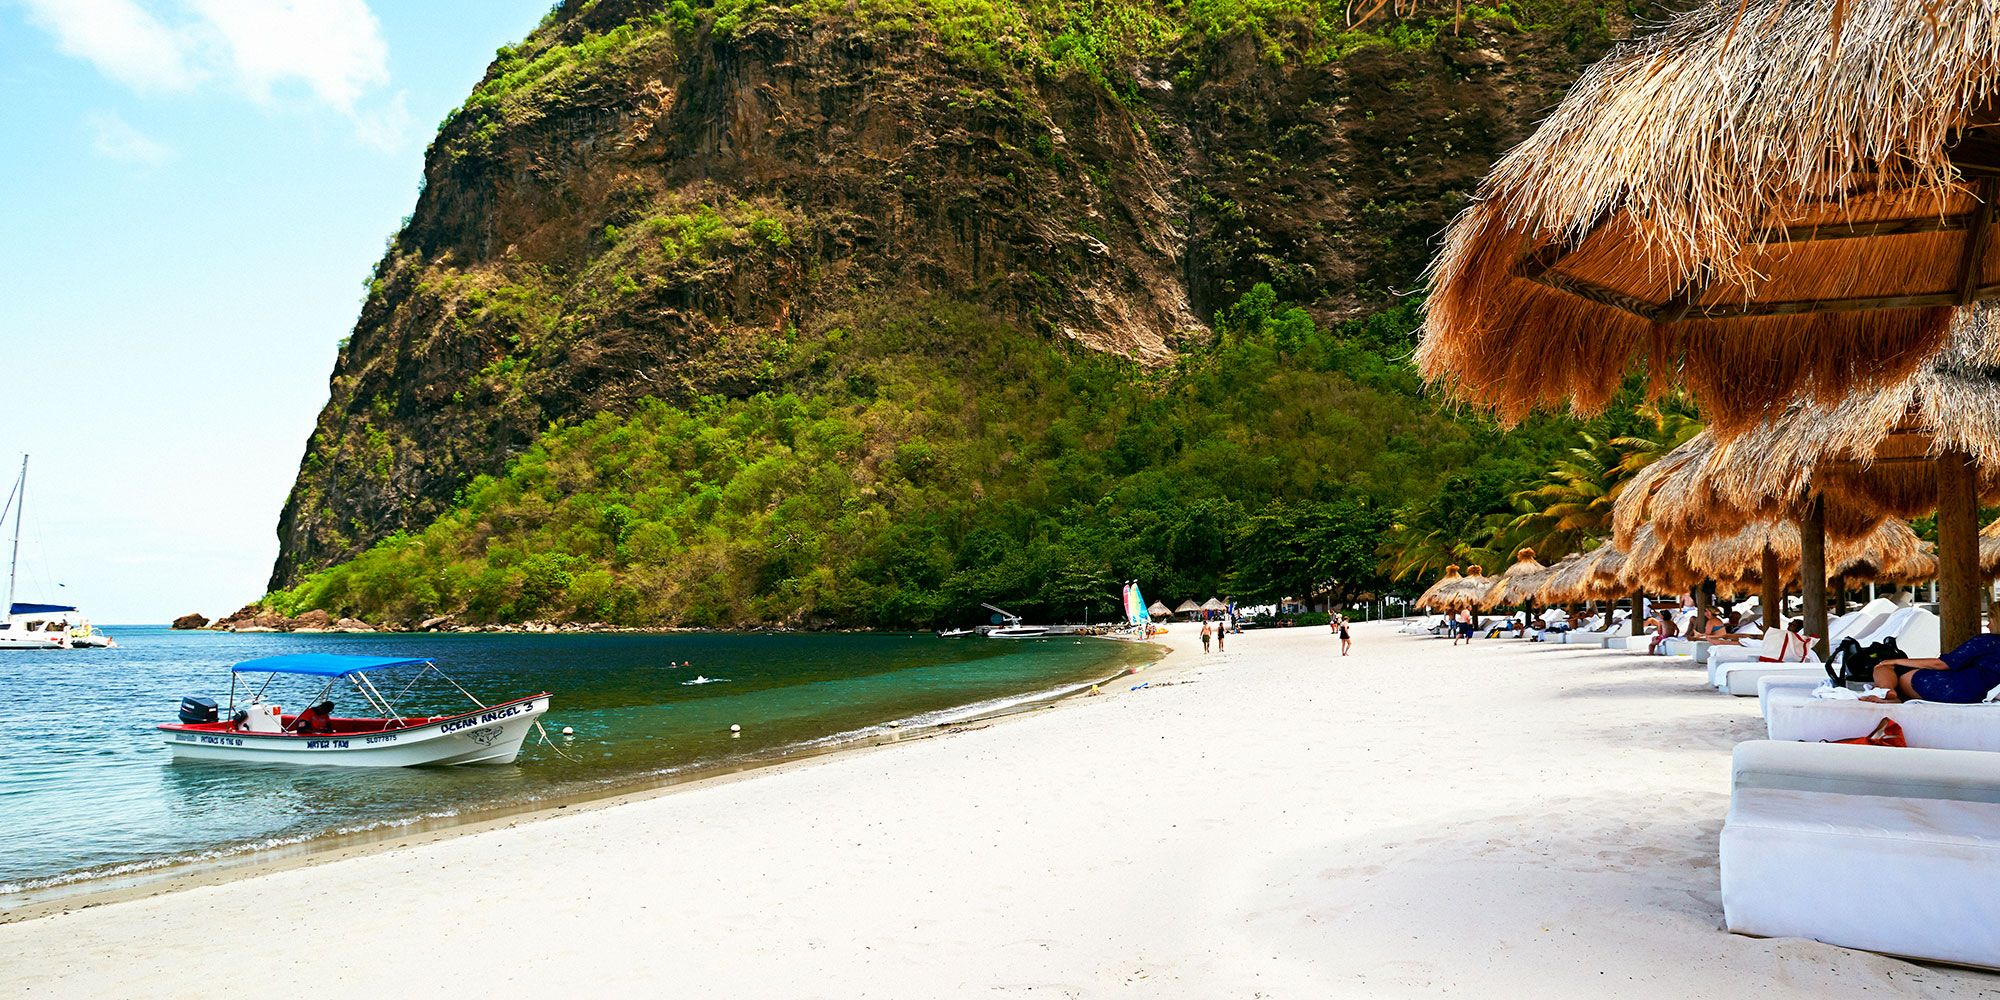 The Best Vacation Spots - Amazing Vacation Destinations